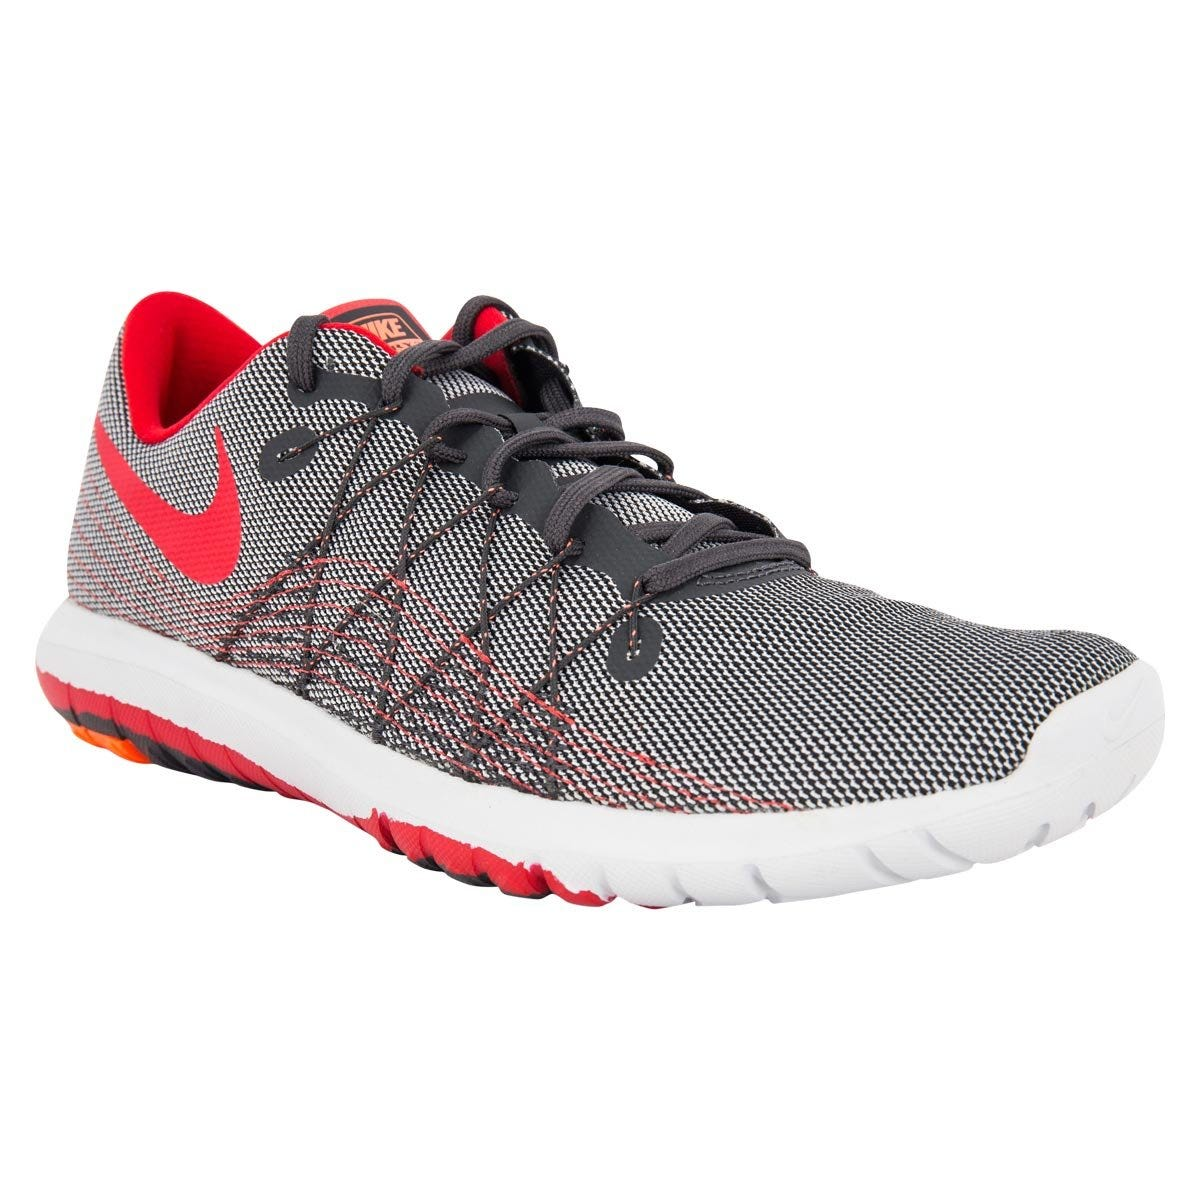 Nike Flex Fury 2 Men's Training Shoes - Anthracite/University Red